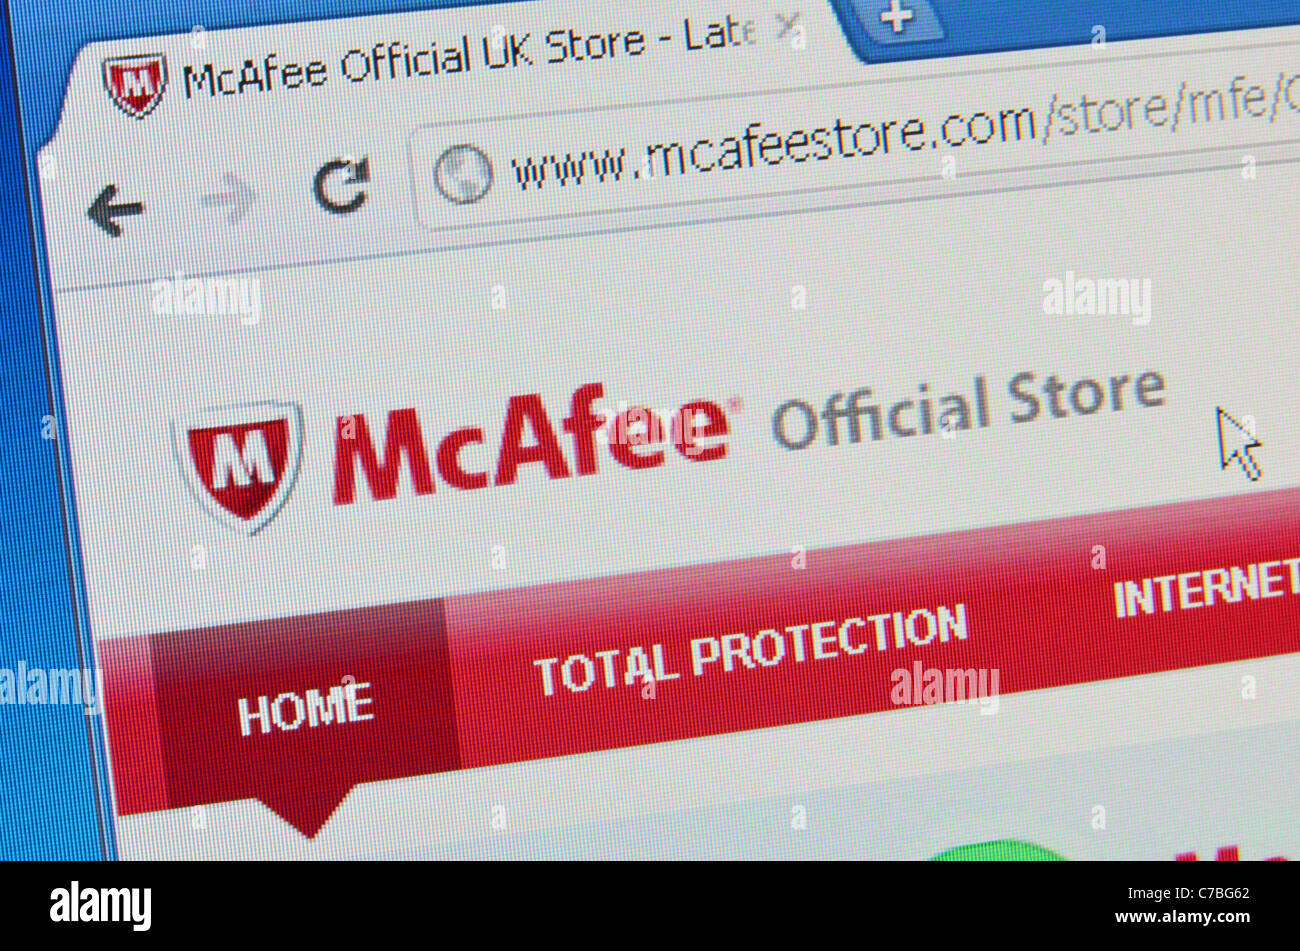 Mcafee Stock Photos & Mcafee Stock Images - Alamy